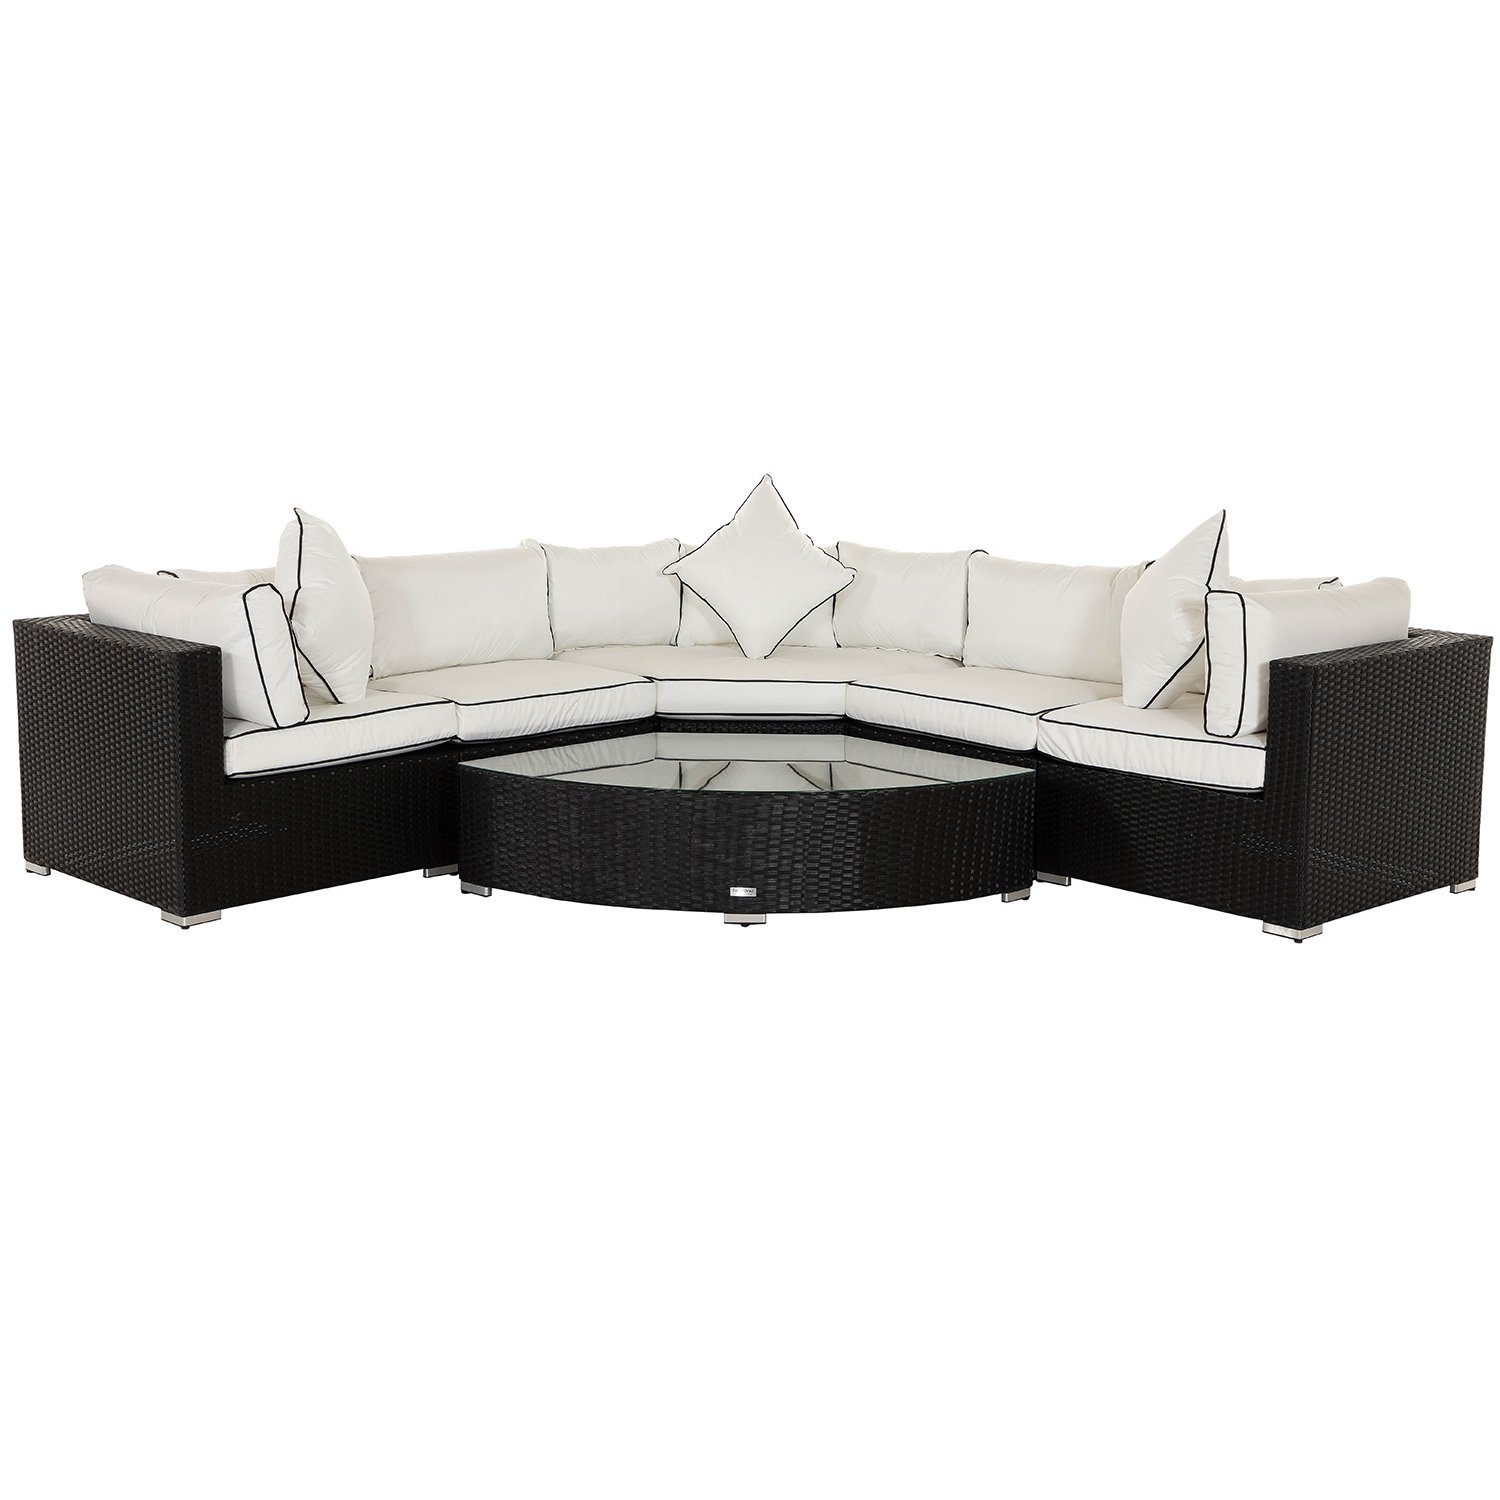 image-Florida 6 Piece Angled Rattan Garden Corner Sofa Set in Black and Vanilla